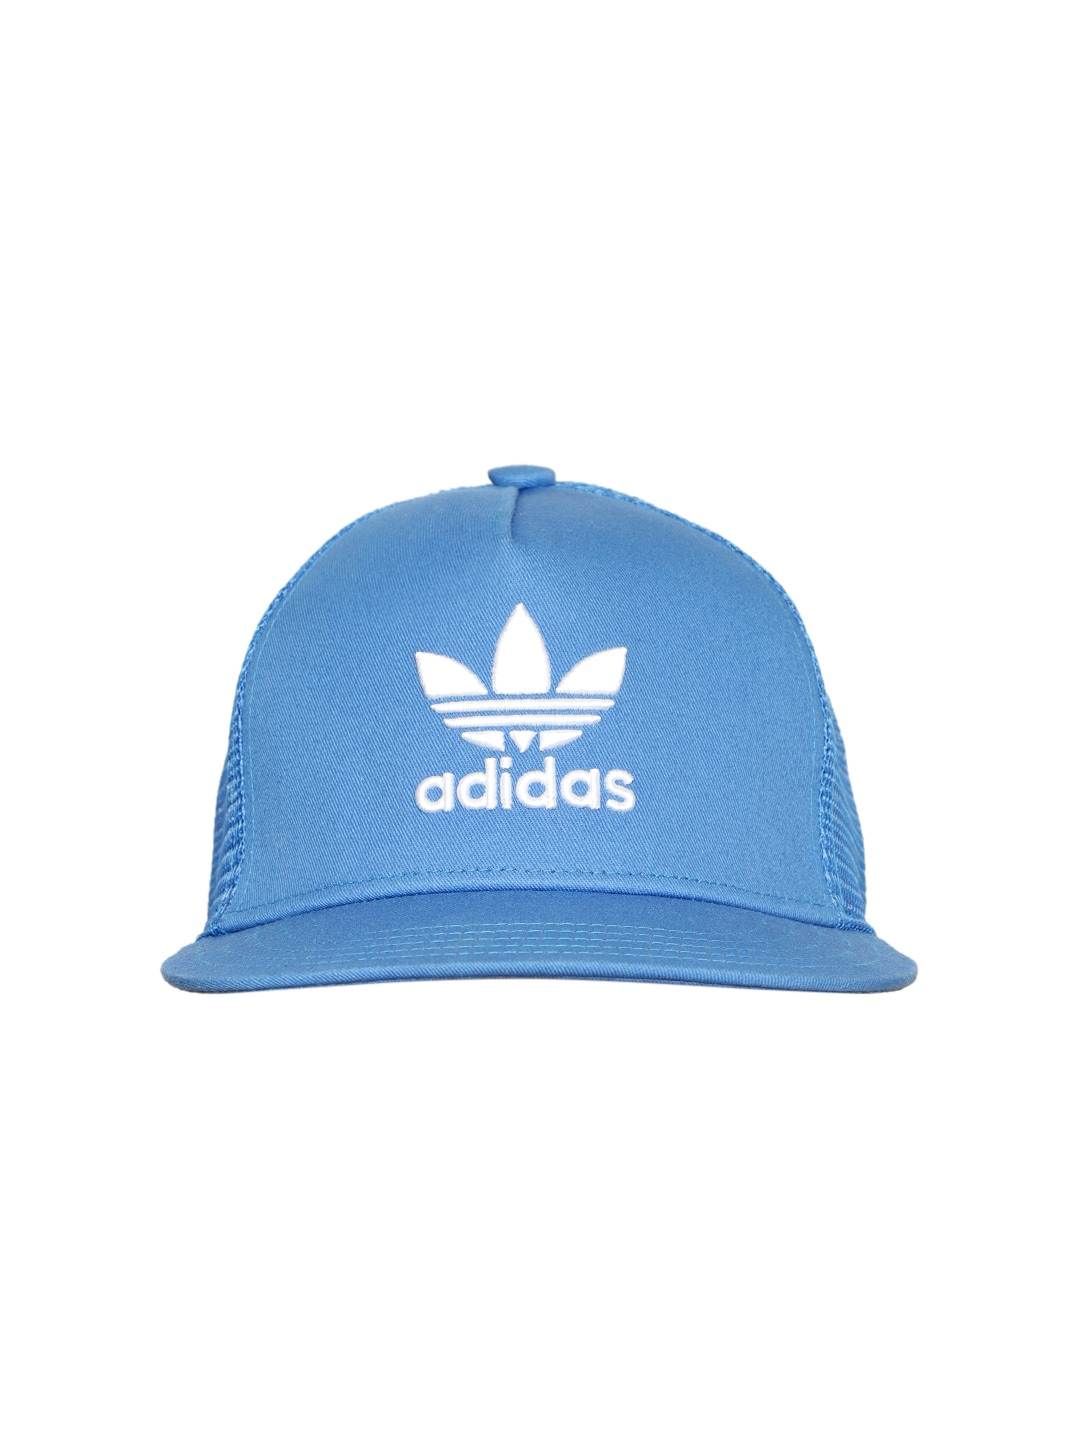 b8522267081 Adidas Cap - Buy Adidas Cap online in India